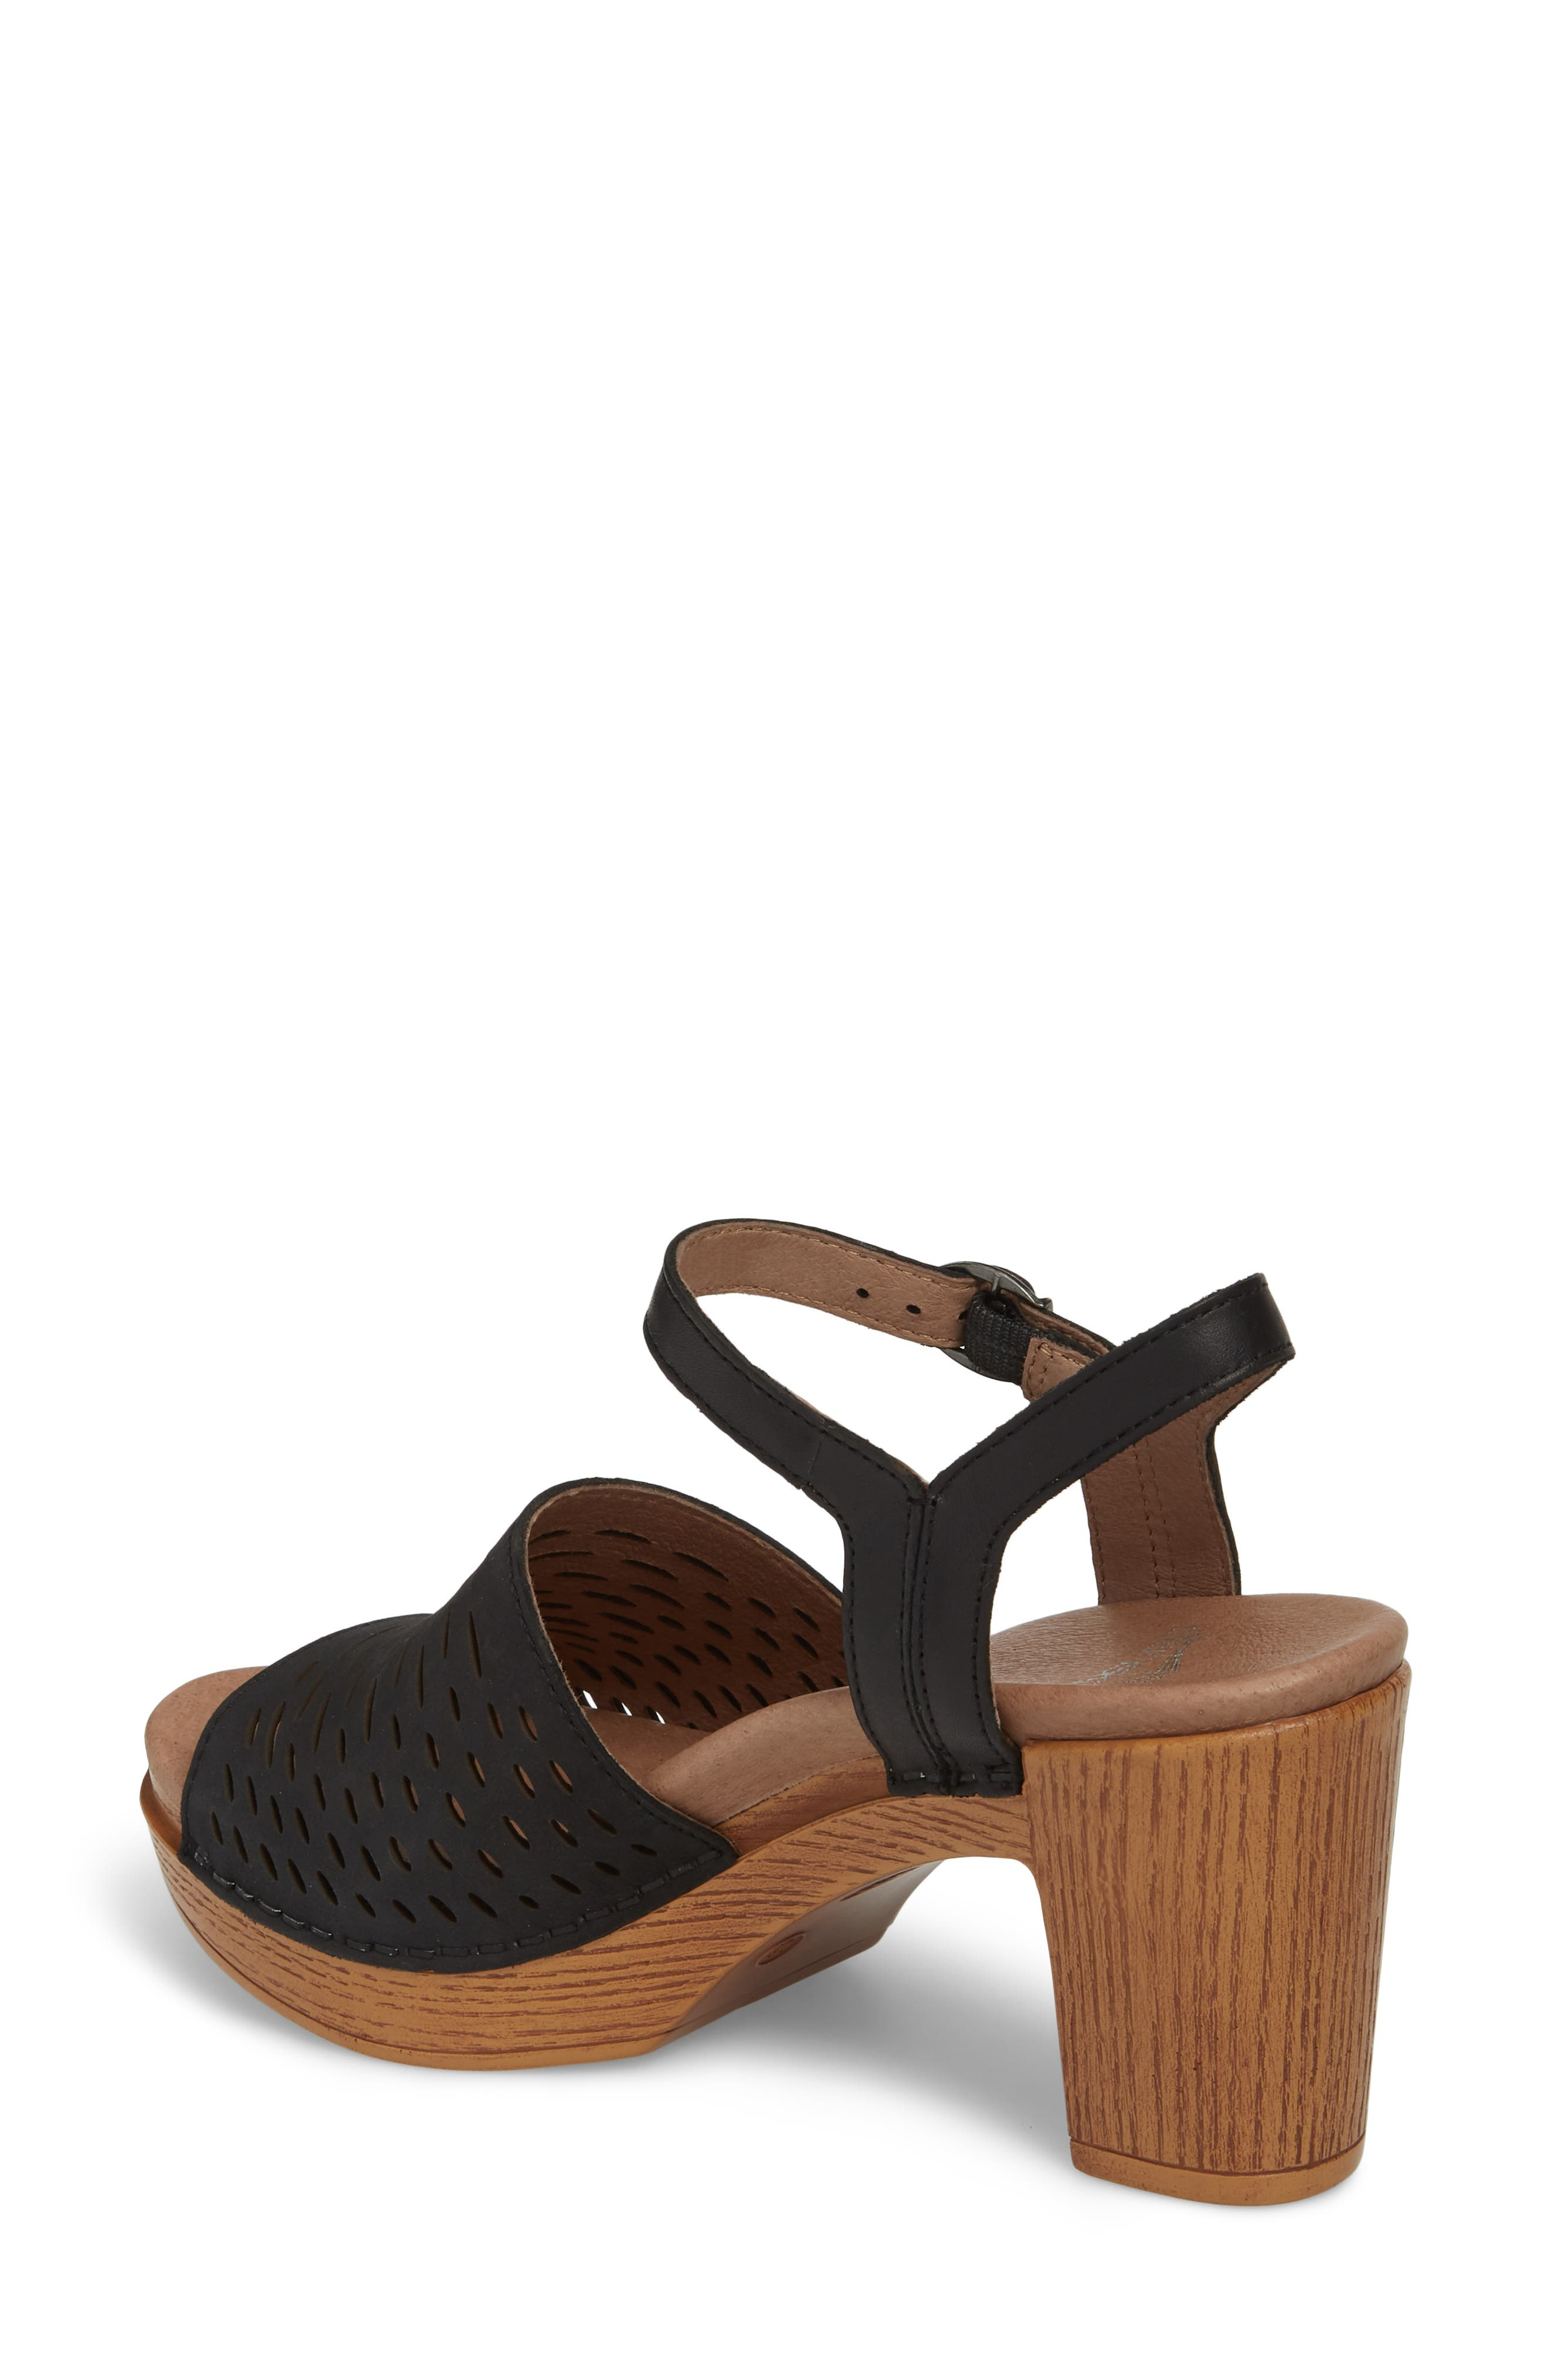 Denita Block Heel Sandal,                             Alternate thumbnail 2, color,                             Black Milled Nubuck Leather